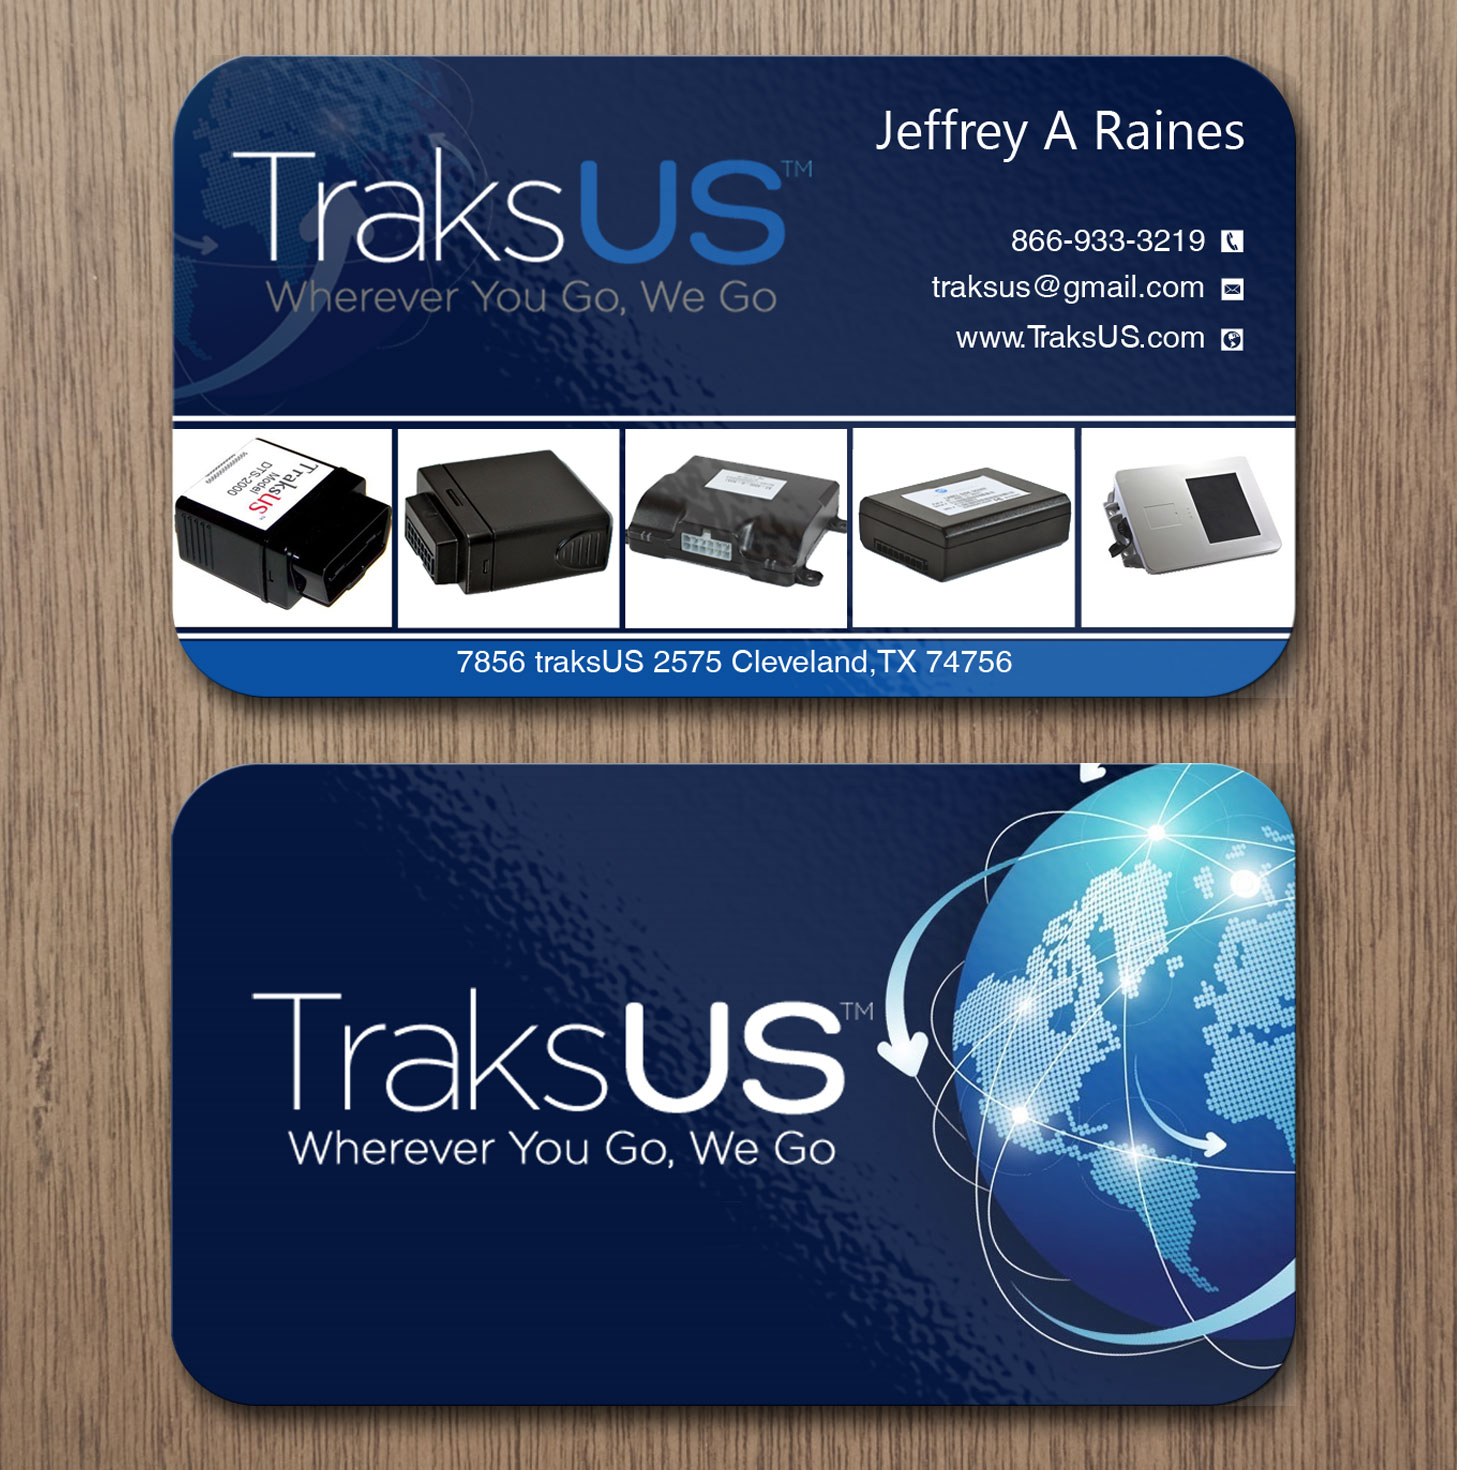 business card design for traksus by lanka ama